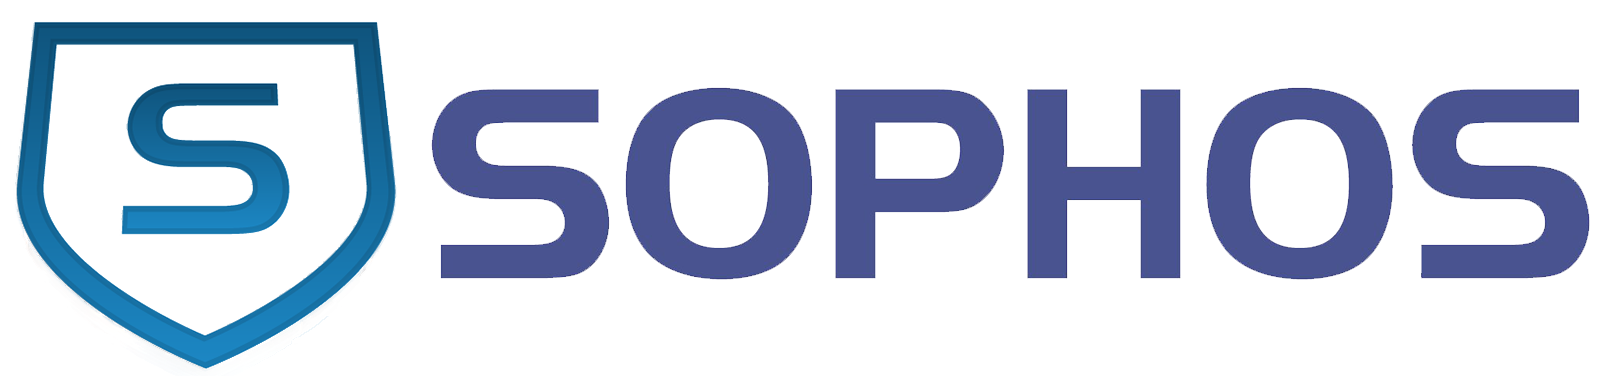 sophos_logo_and_icon.png